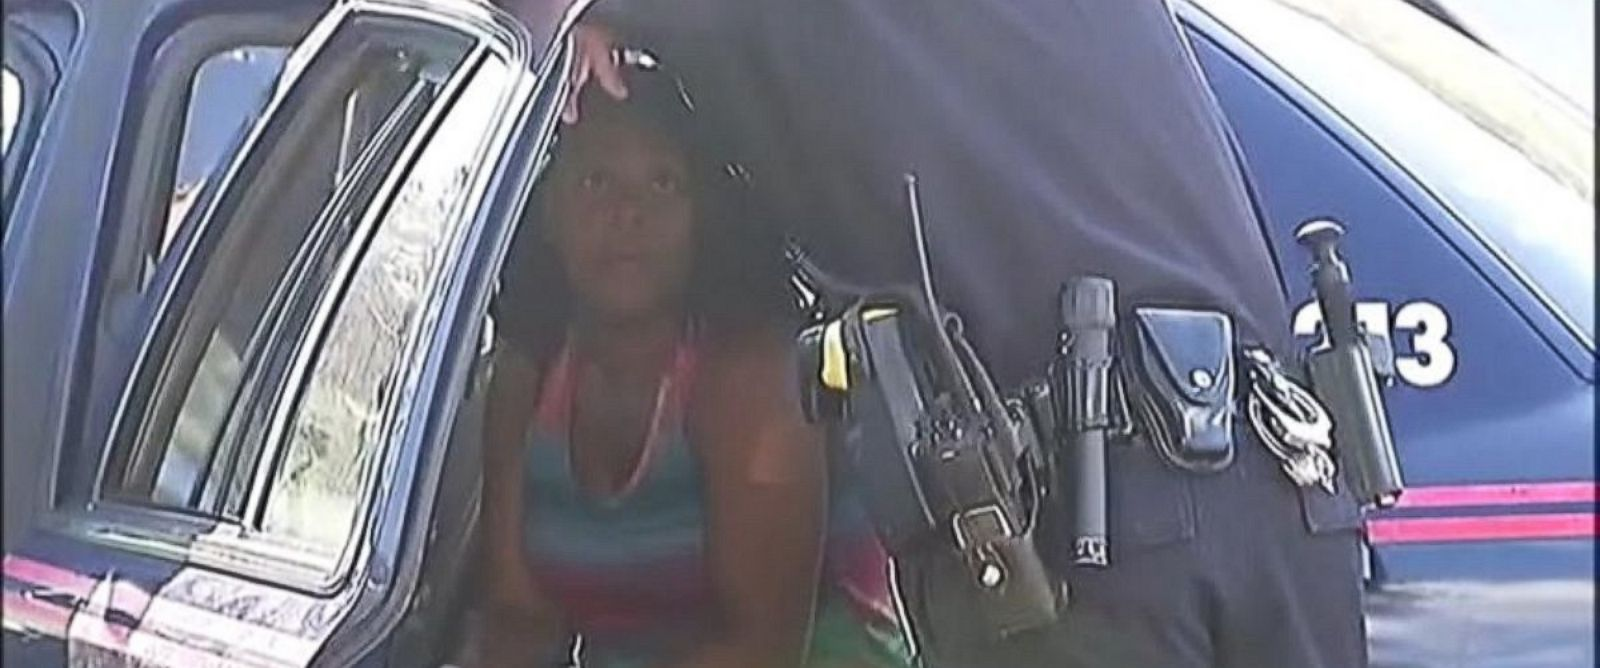 PHOTO: Charnae Mosley, 27, faces four counts of reckless conduct after leaving her four children inside of a SUV, Atlanta police confirmed.